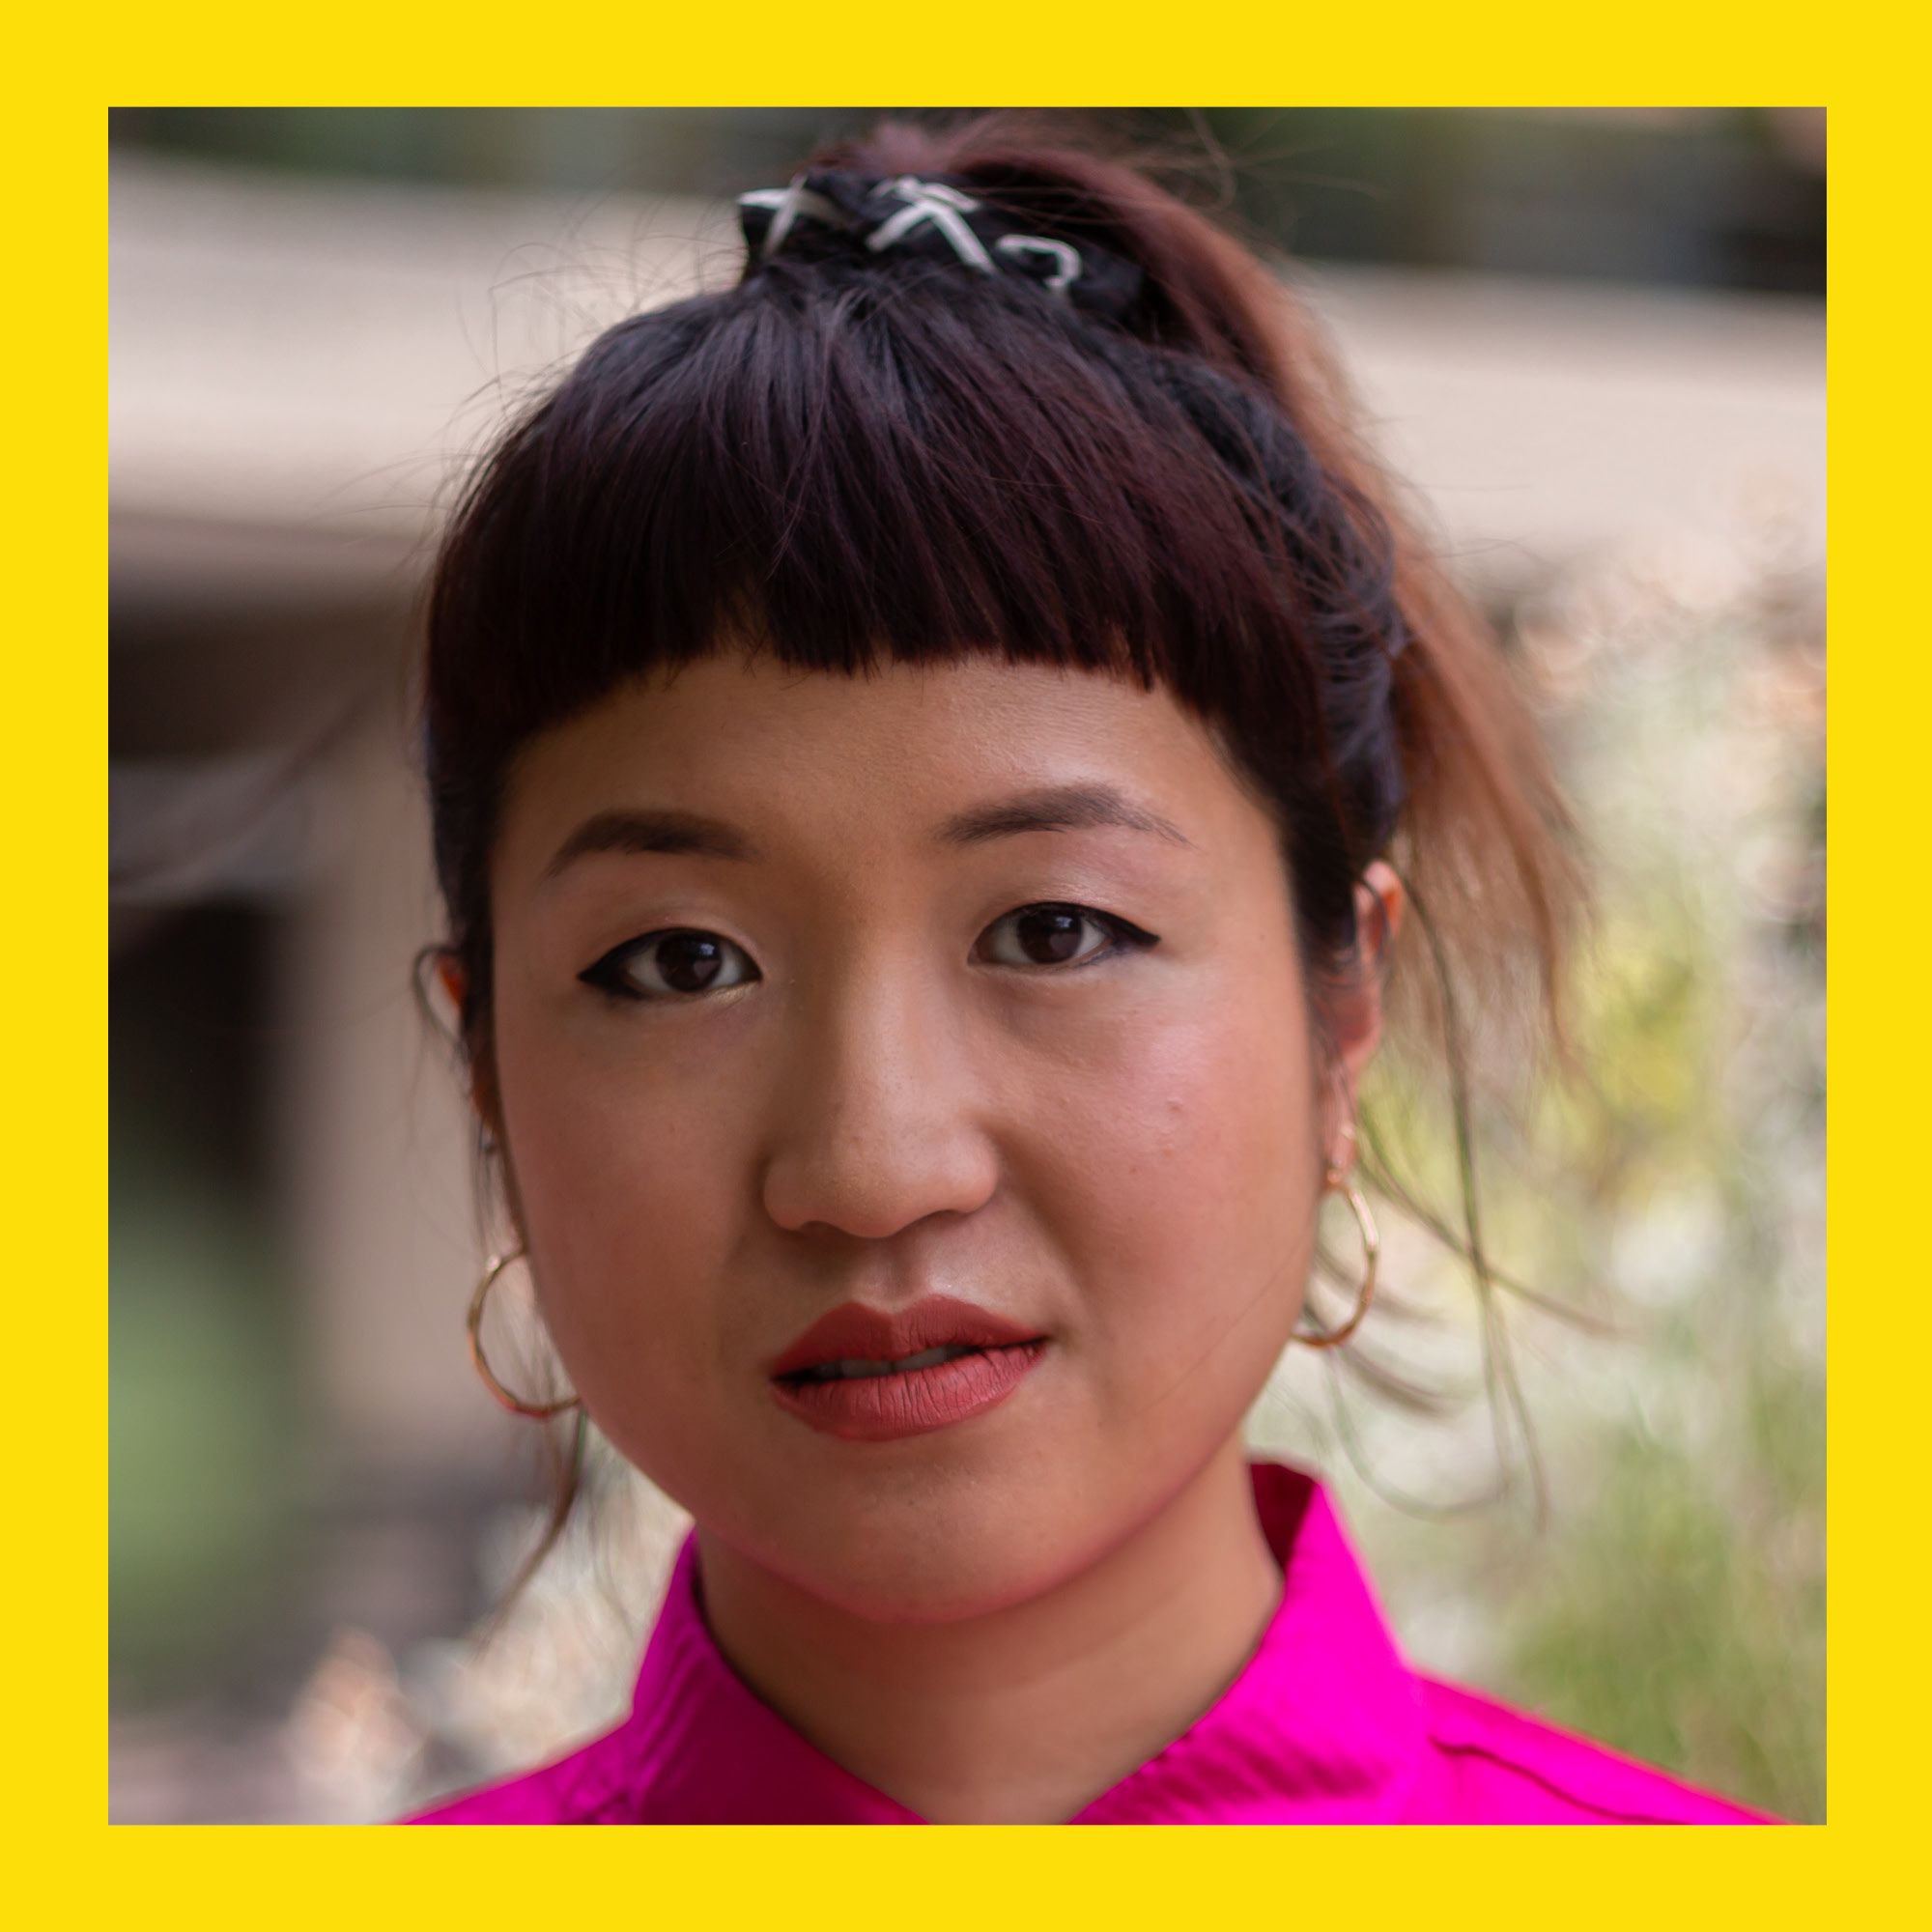 - Sharlene Teo's debut novel Ponti won the inaugural Deborah Rogers Writer's Award, was shortlisted for the 2018 Hearst Big Book Award and the 2019 Edward Stanford Award for Fiction with a Sense of Place, and was longlisted for the 2019 Jhalak Prize.